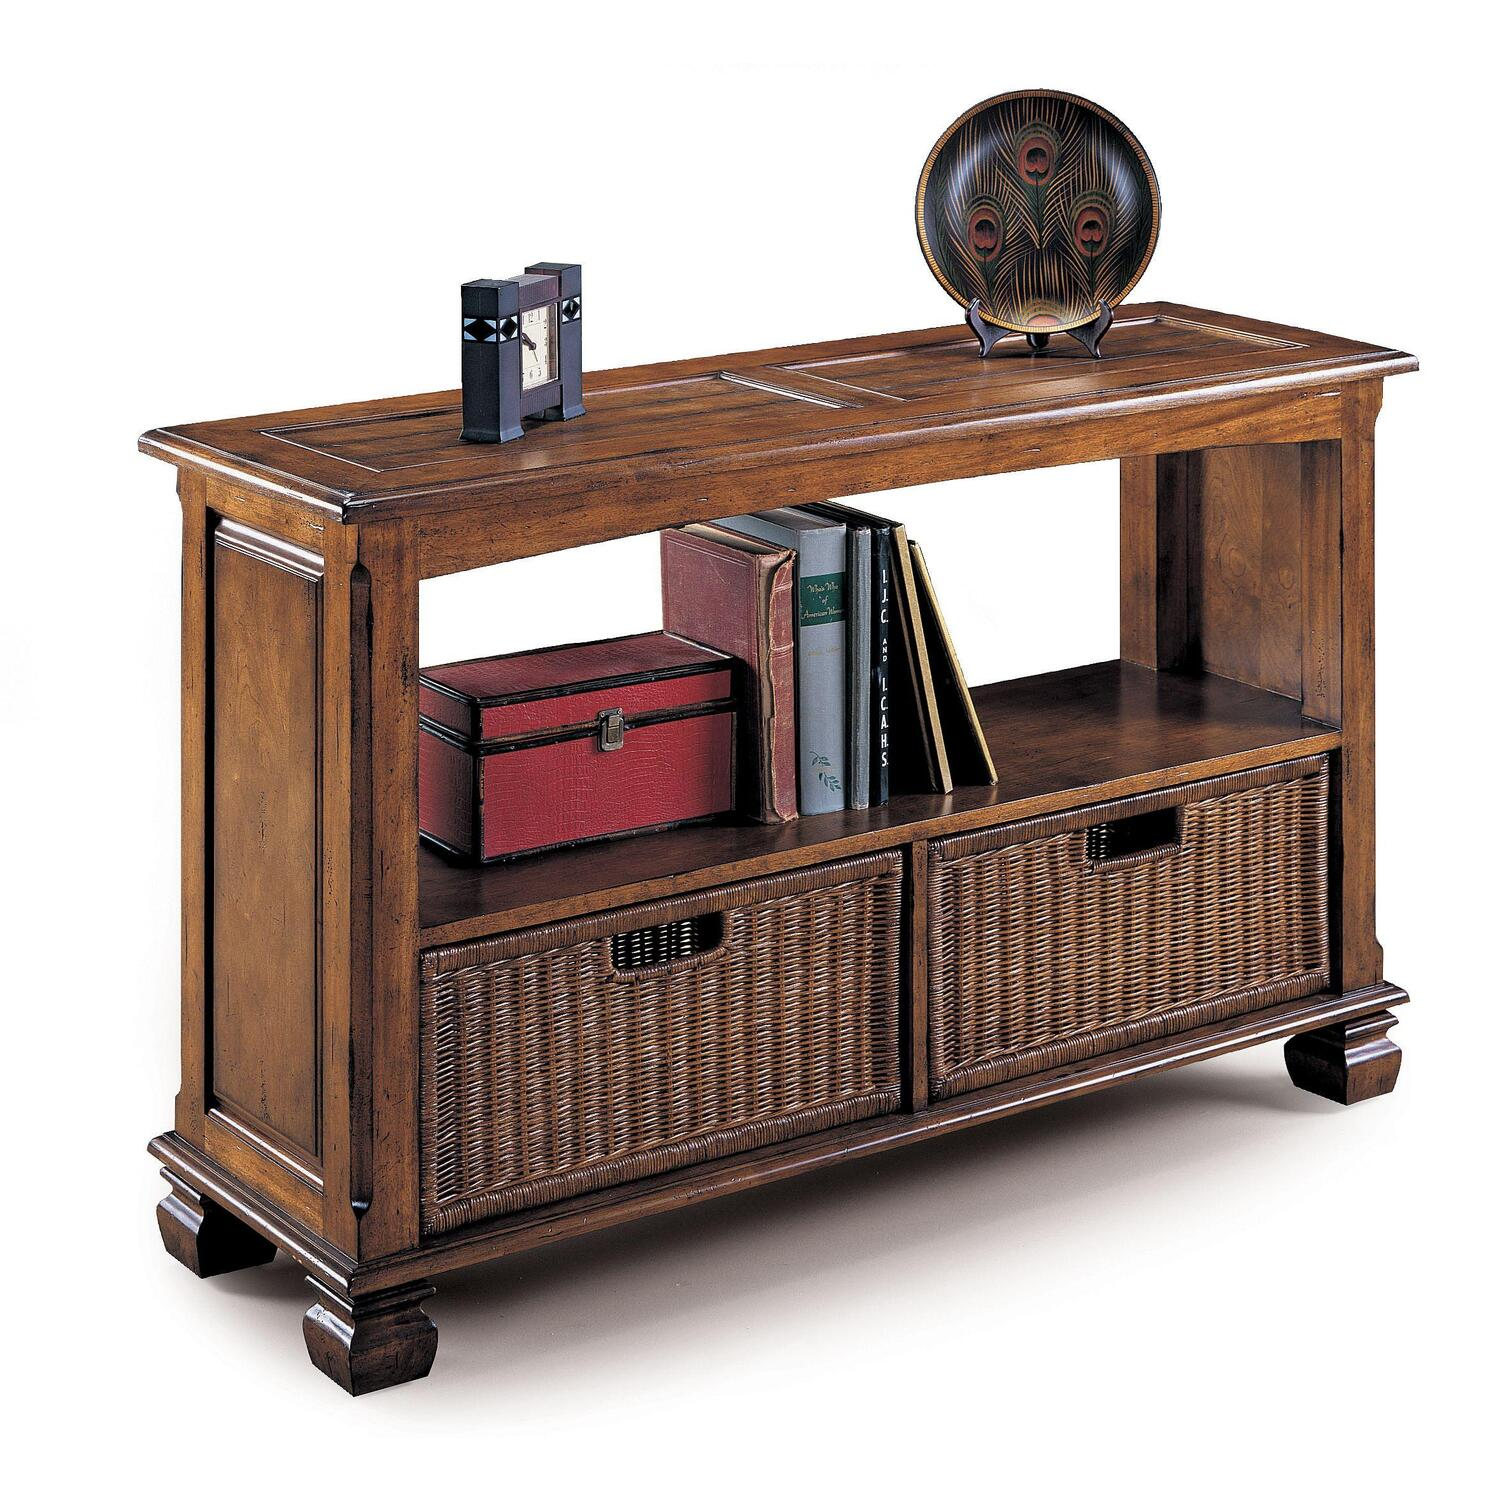 cherry sofa table with storage how can i clean my fabric naturally lane surrey baskets by oj commerce